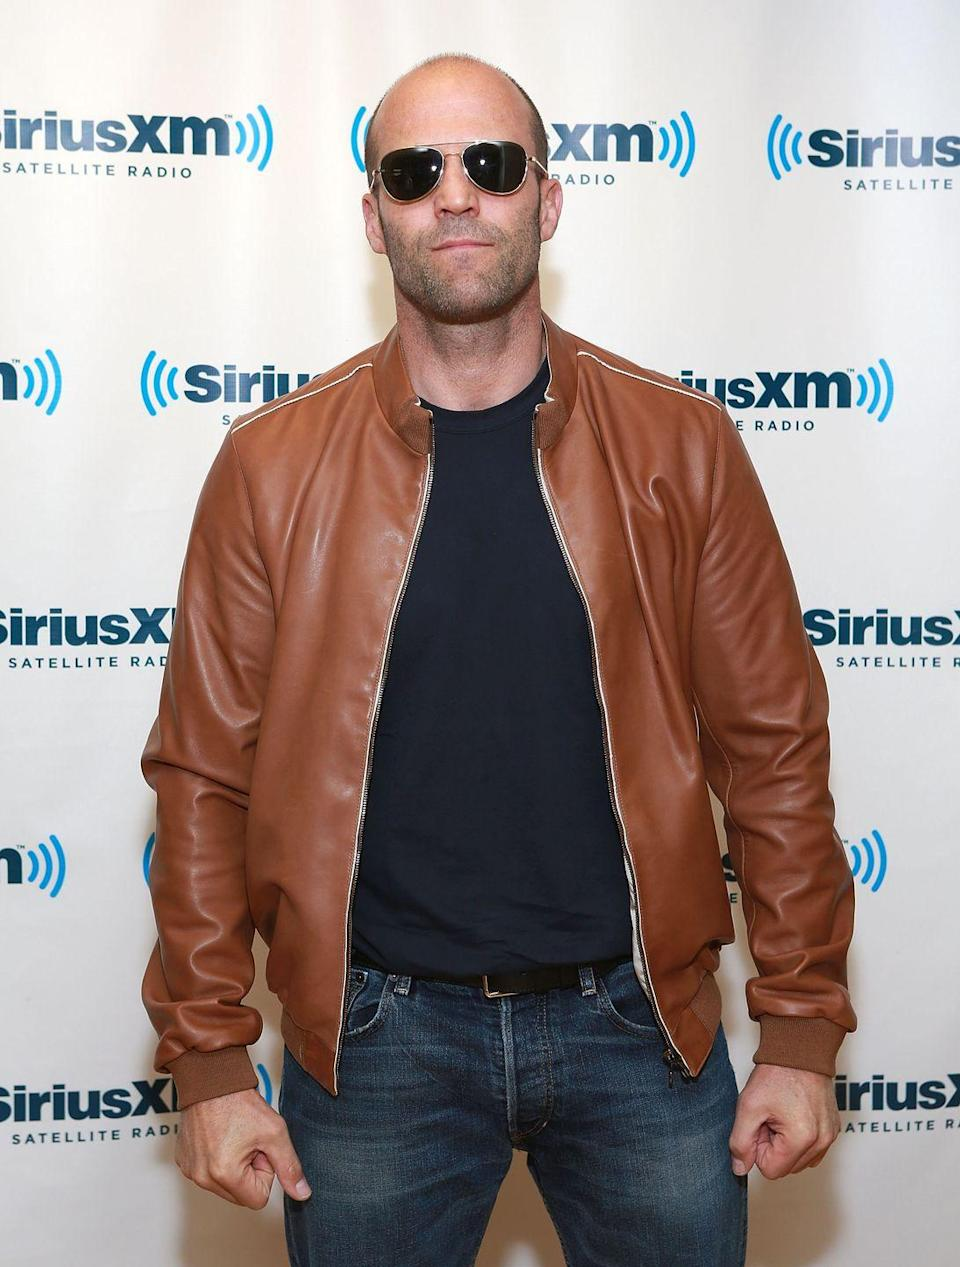 "<p>Fists clenched, jaw tight, despite being clad in leather, Jason Statham is surely flexing as he visits the Sirius XM studios in 2013. Why not? The action star puts in hard work to <a href=""https://www.menshealth.com/fitness/g21070508/jason-statham-instagram/"" rel=""nofollow noopener"" target=""_blank"" data-ylk=""slk:achieve his physique"" class=""link rapid-noclick-resp"">achieve his physique</a>.</p>"